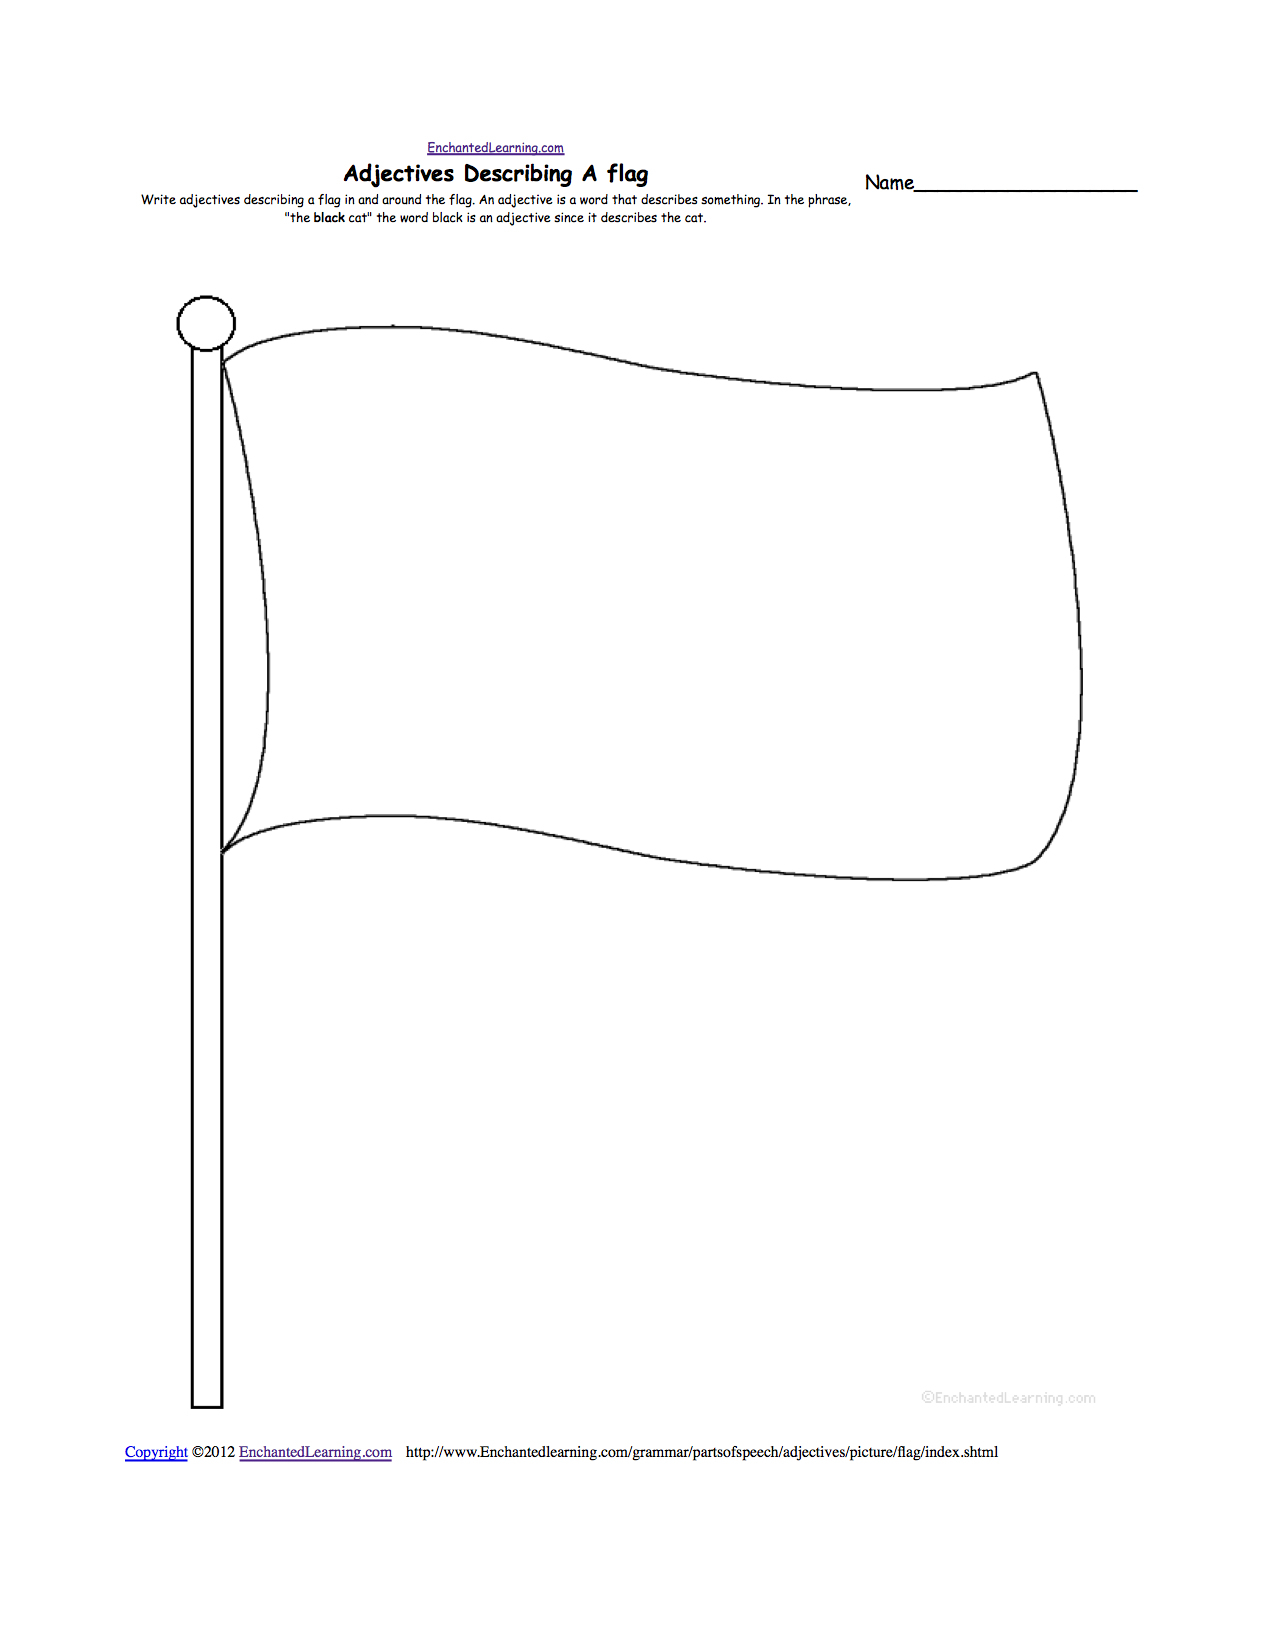 Blank Flag Worksheets Ideal Design Your Own Flag Template - Mctoom - Free Printable Blank Flag Template